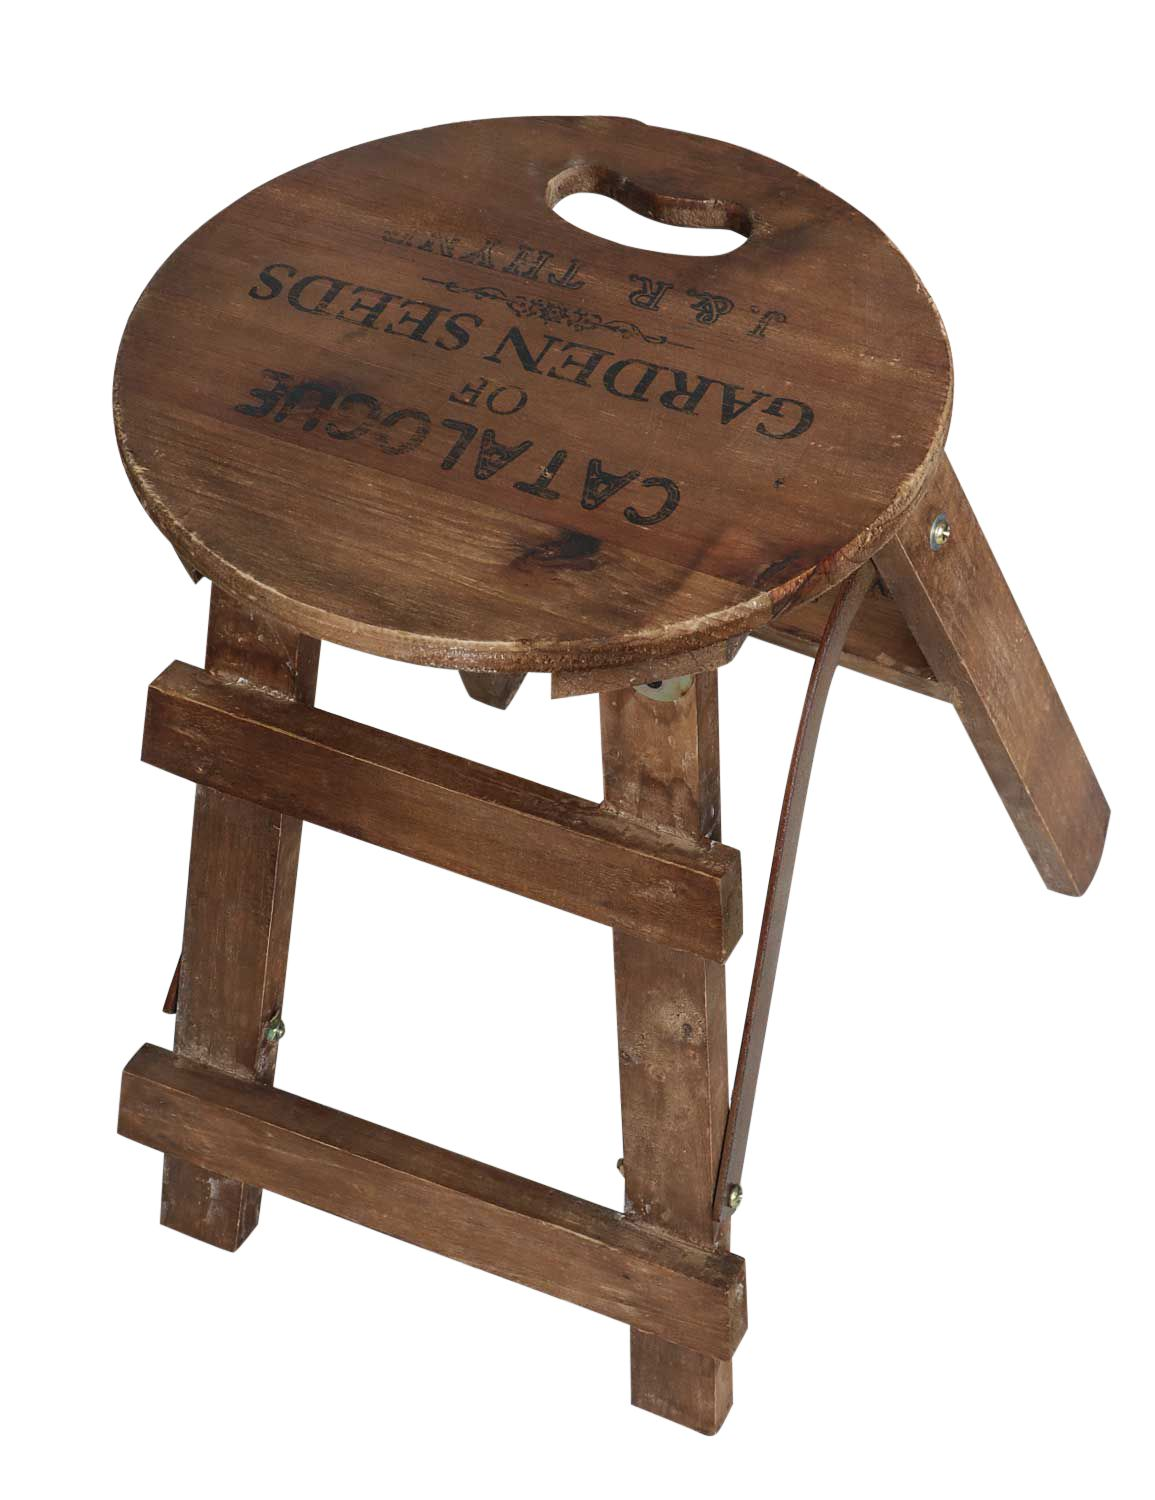 nostalgia flowers stool wood flowers bank pflanztreppe table stool antique style ebay. Black Bedroom Furniture Sets. Home Design Ideas